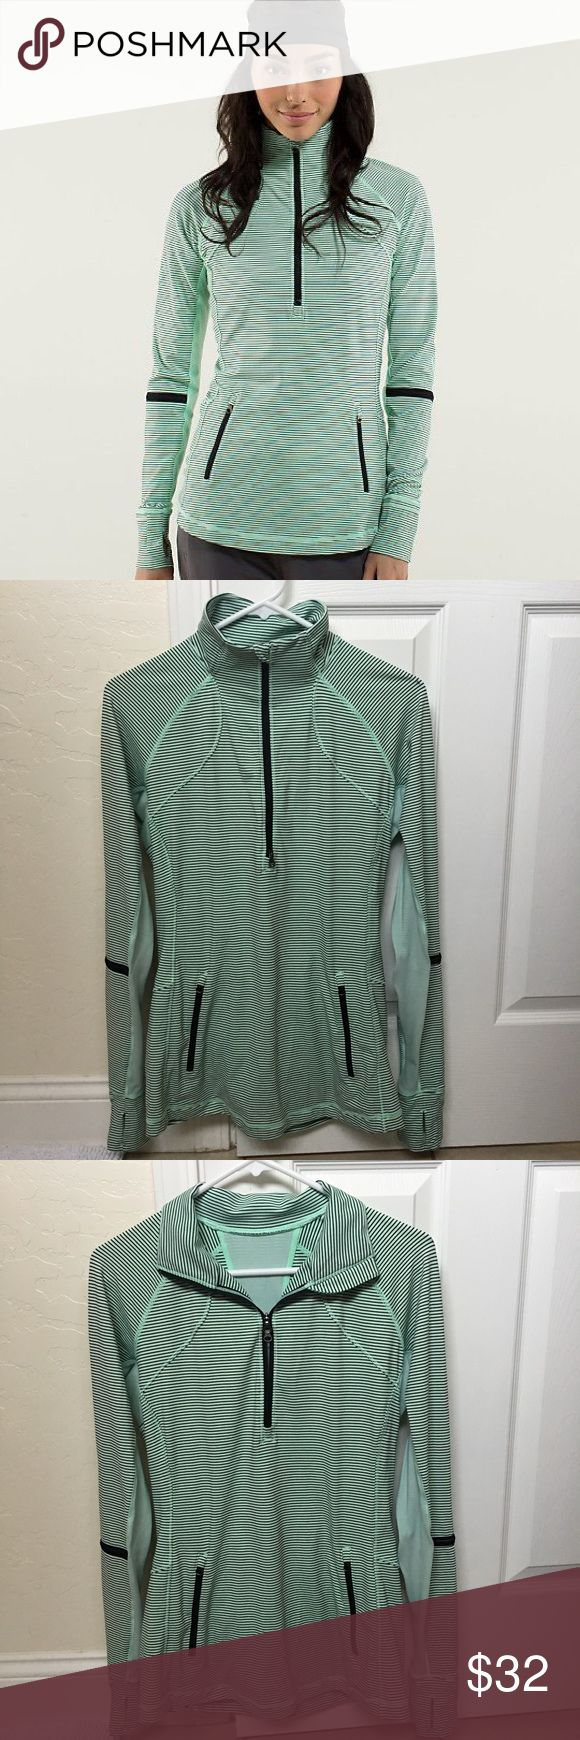 Lululemon Race with Grace half zip - fresh teal 10 Great used condition half zip in mini hyper stripe fresh teal pattern. All zippers working. Small ink pen stain on left shoulder, not too noticeable. Also a couple of minor pulls under the arms, as seen in photo. This top/jacket still looks great. I just want to describe any issues I can find. Price reflects. Size 10. lululemon athletica Tops Sweatshirts & Hoodies